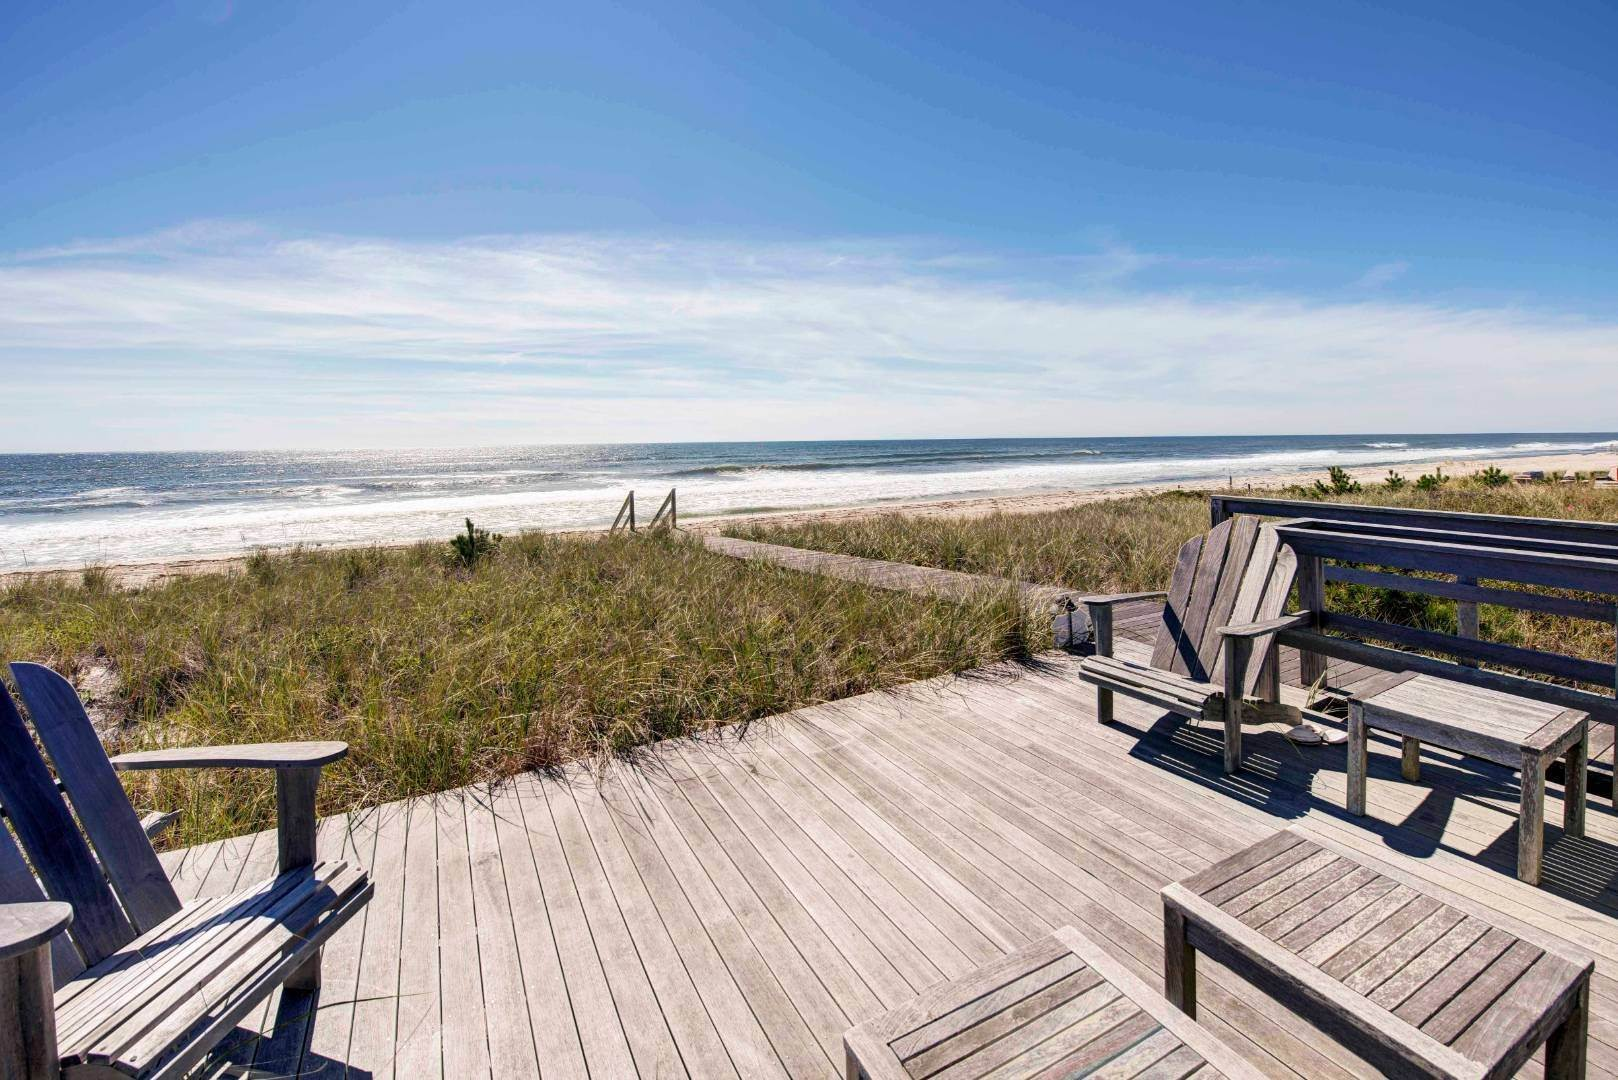 Single Family Home 为 销售 在 Luxury Quogue Oceanfront 148 Dune Rd, Quogue Village, NY 11959